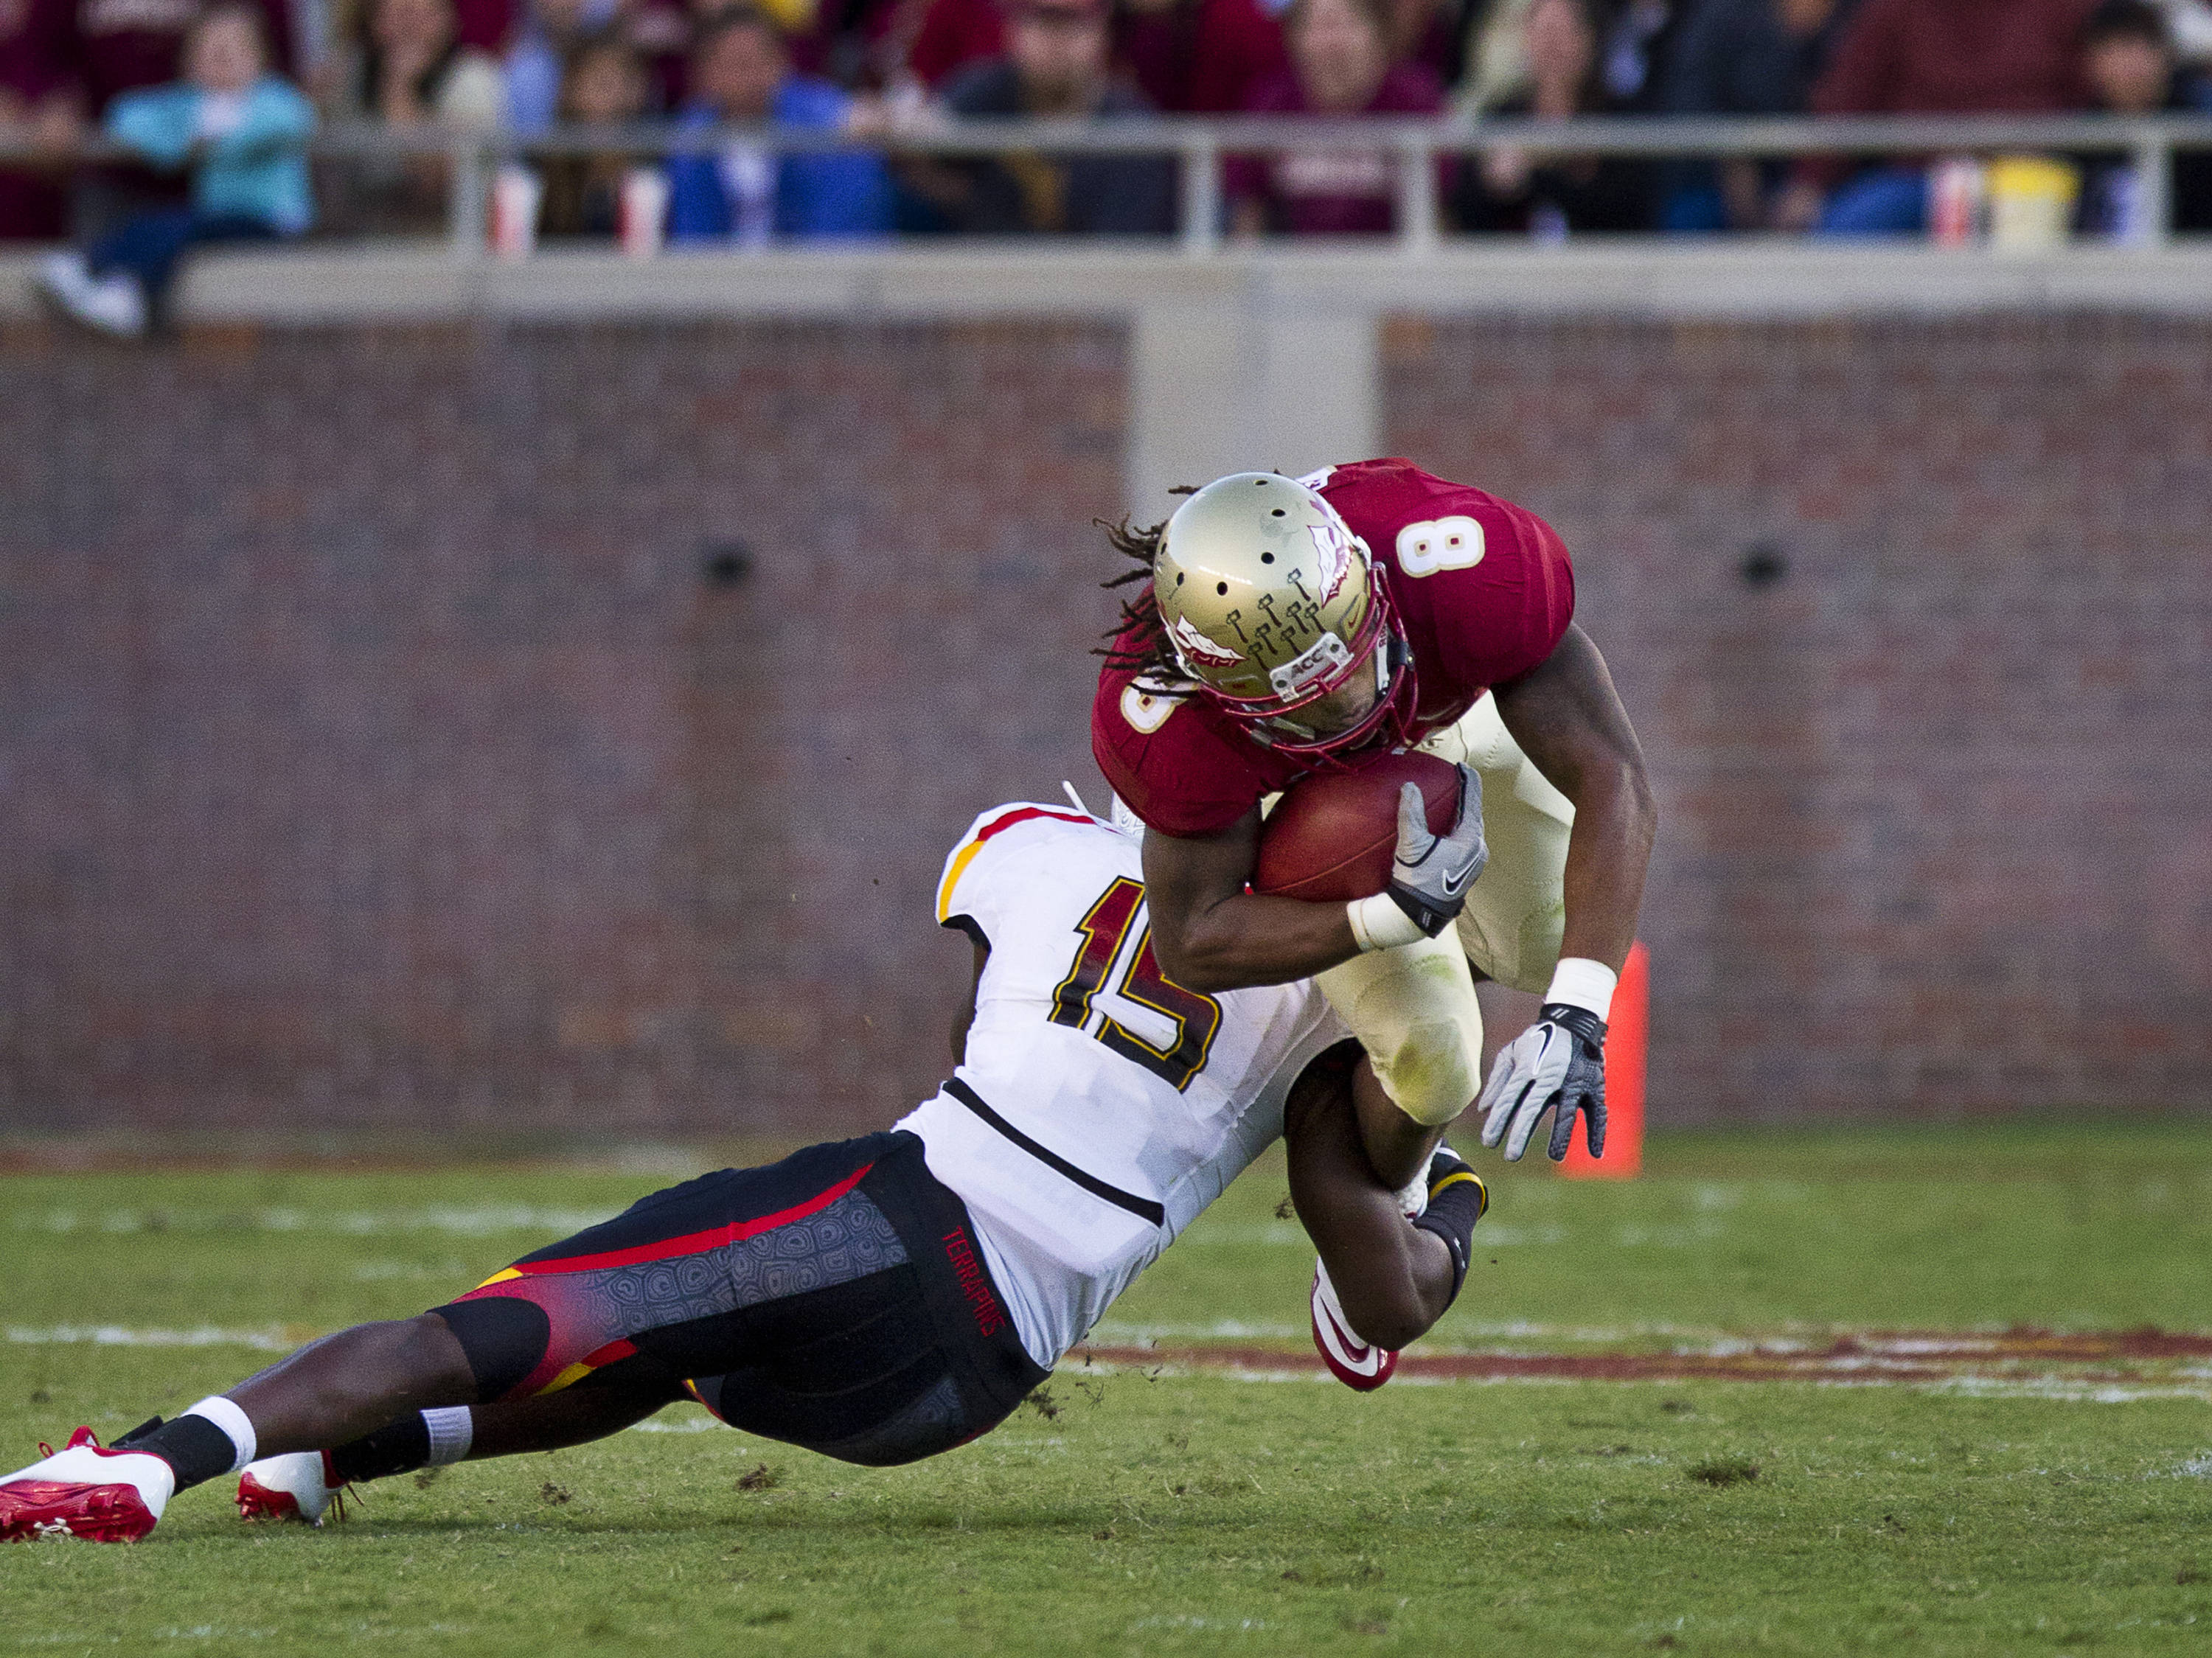 Timmy Jernigan (8) carries the ball down field during the football game against Maryland in Tallahassee, Florida on October 22, 2011.